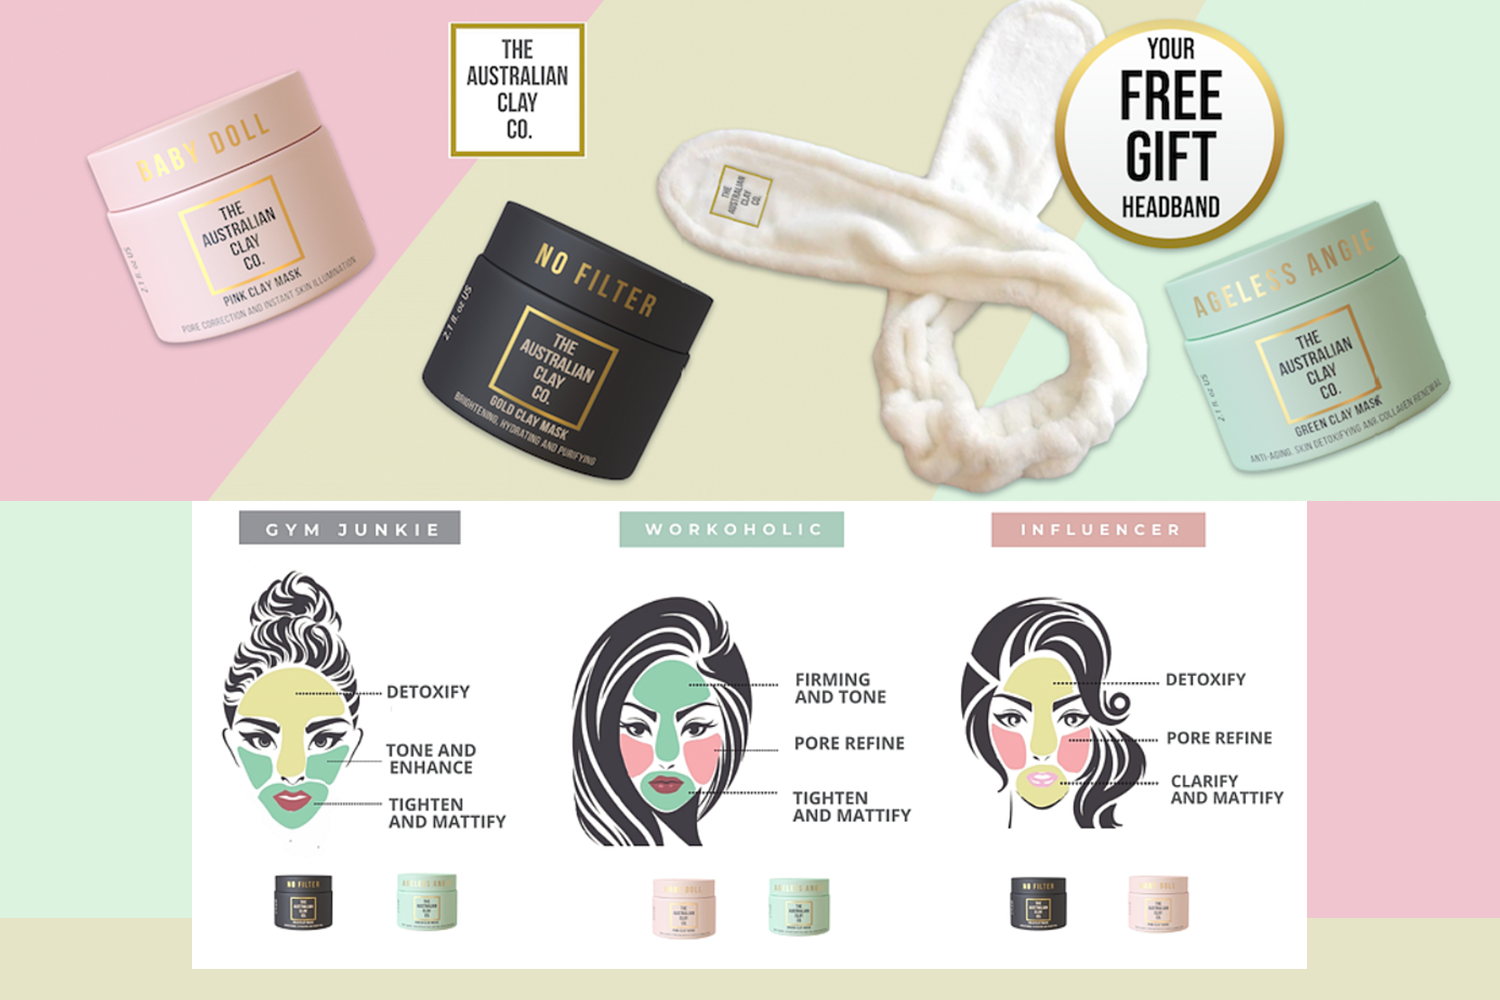 The Australian Clay Co.Your Free Gift! Bunny Ears Headband! - When you buy a Baby Doll Pink Clay Mask, No Filter Gold Clay Mask or Ageless Angie Green Clay Mask.Receive your GIFT when you type HEADBAND in the Additional Information box during checkout.Offer available while stock lasts.